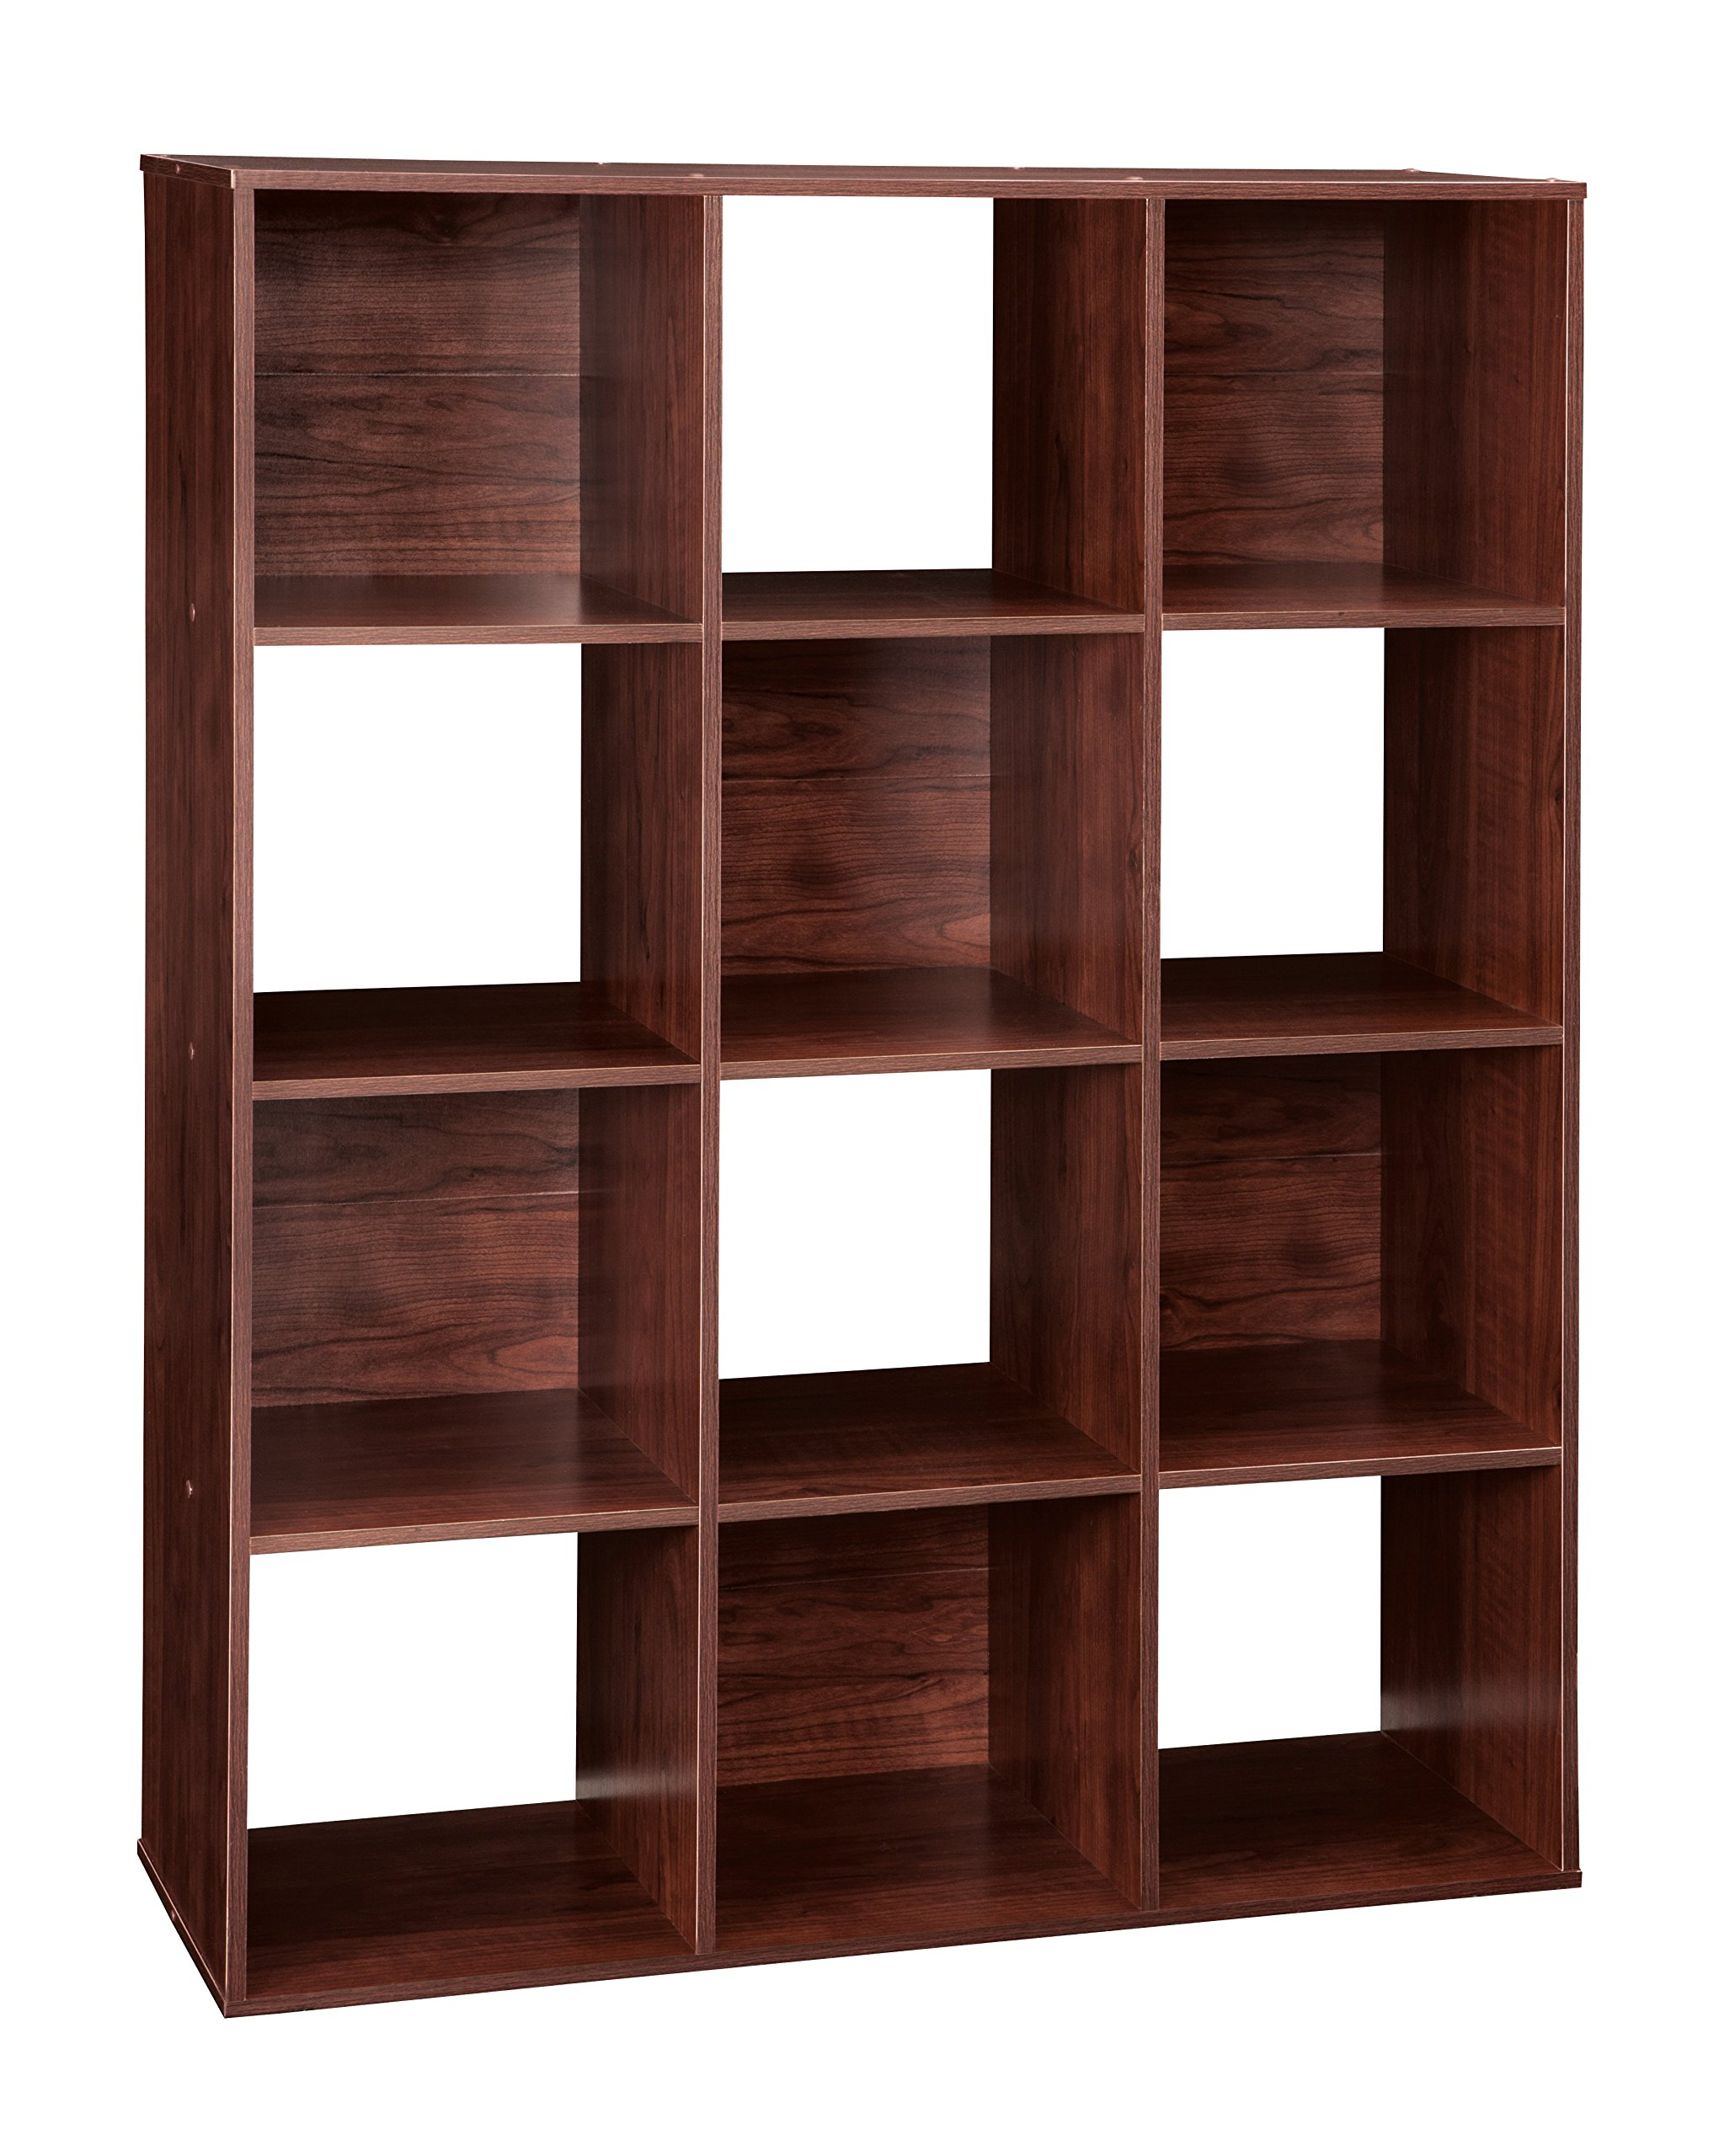 ClosetMaid 1022 Cubeicals Organizer, 12-Cube, Dark Cherry by ClosetMaid